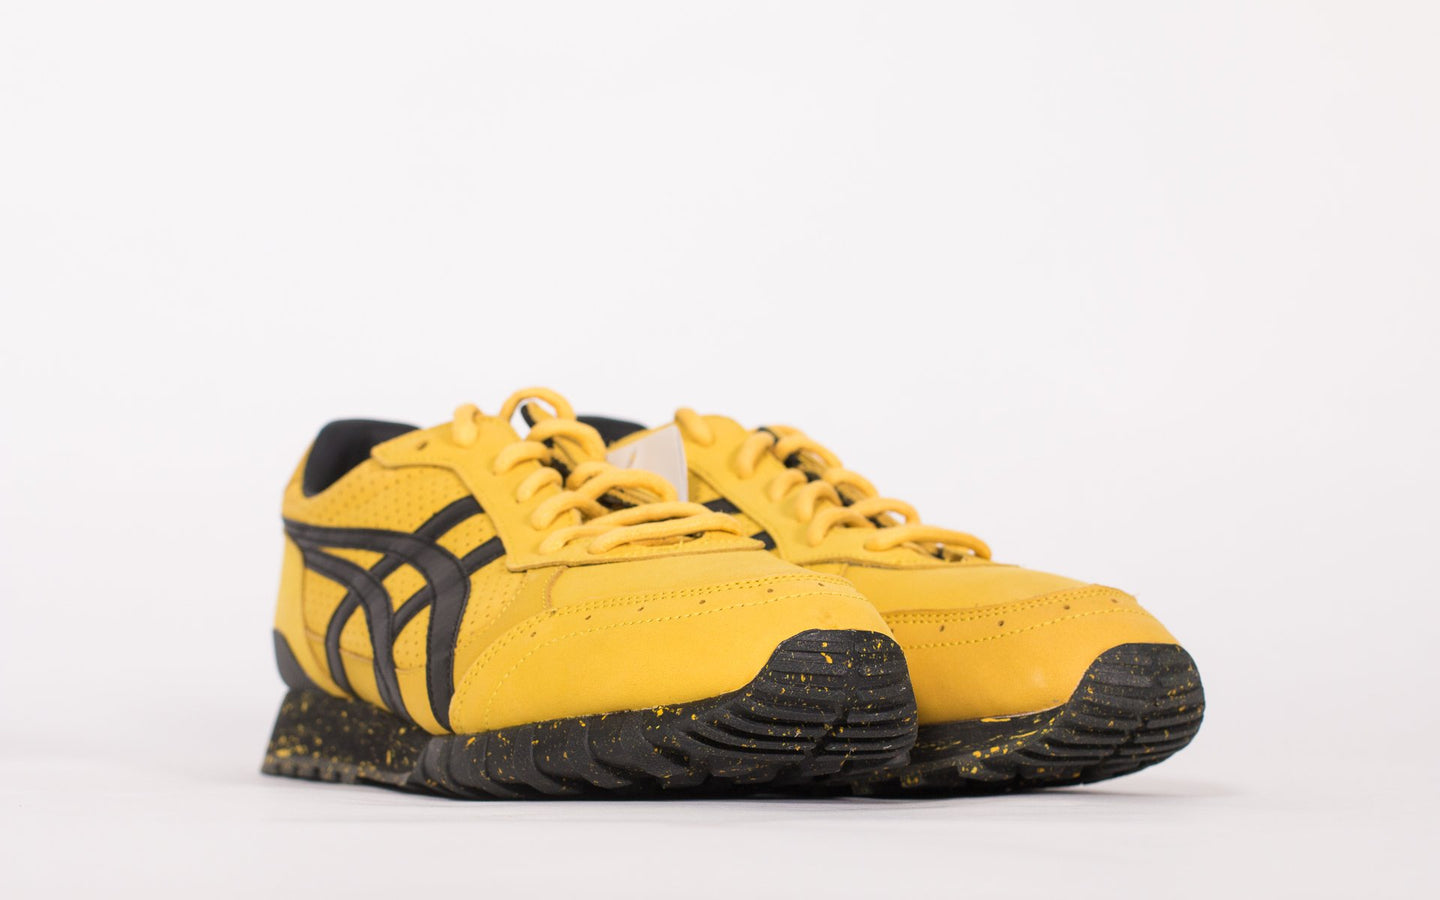 Onitsuka Tiger Colorado 85 BAIT x Bruce Lee (New)